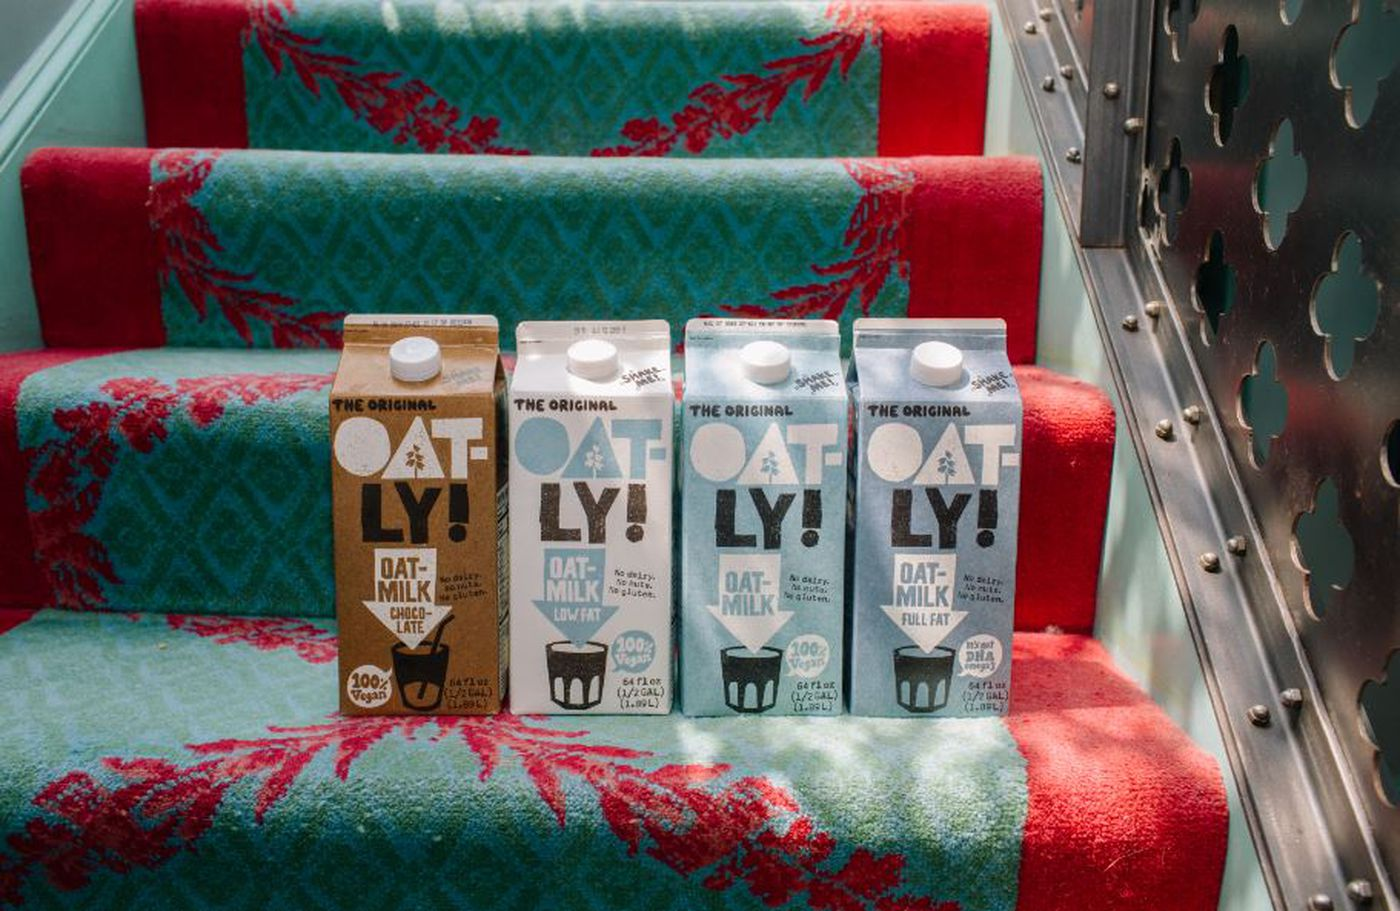 Oatly, a Swedish-based oat milk company, opened a plant in Millville, N.J., in 2018